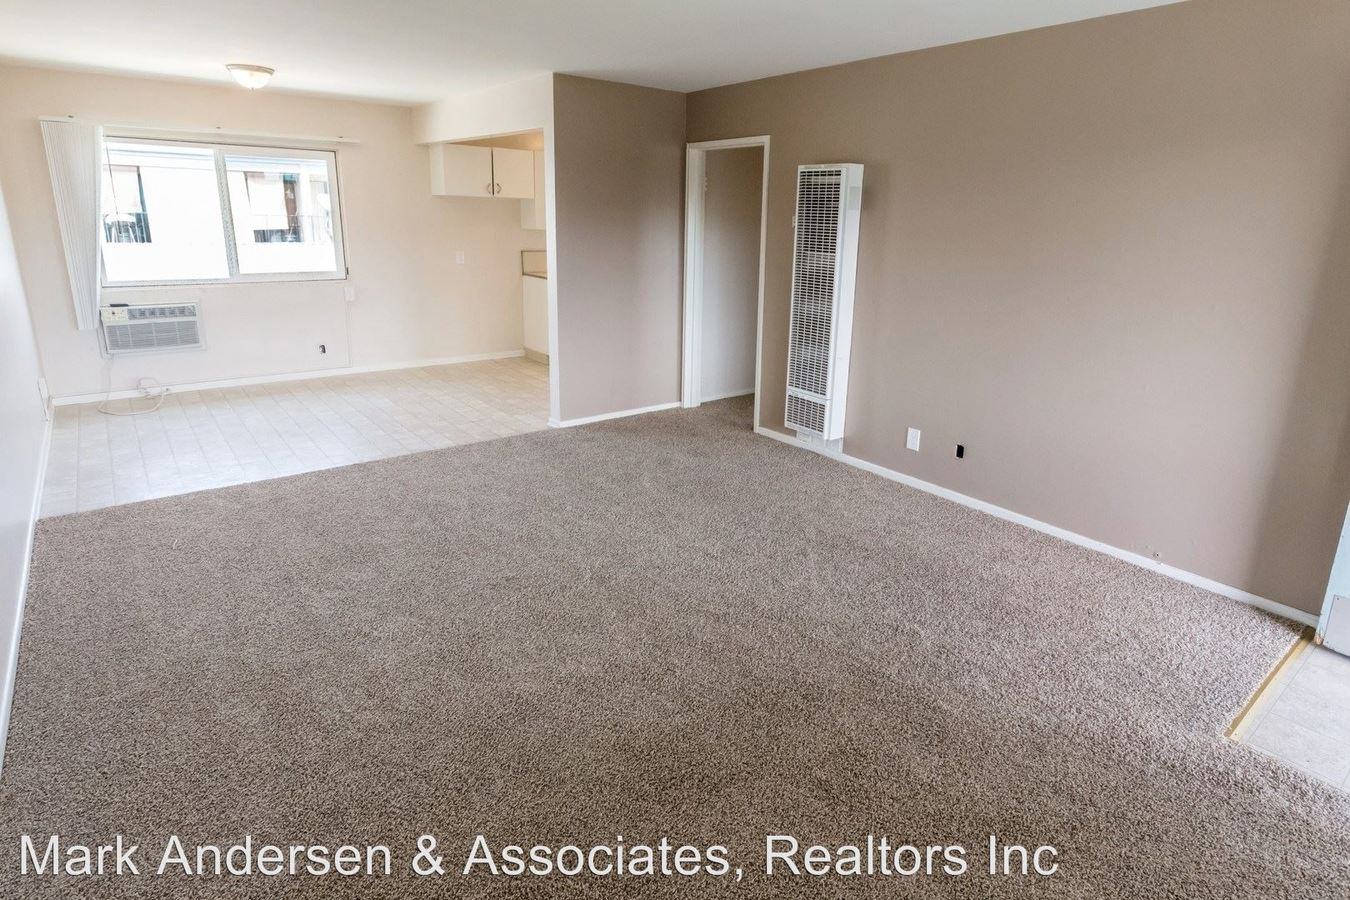 2 Bedrooms 1 Bathroom Apartment for rent at 535 S. Barranca Ave. in Covina, CA